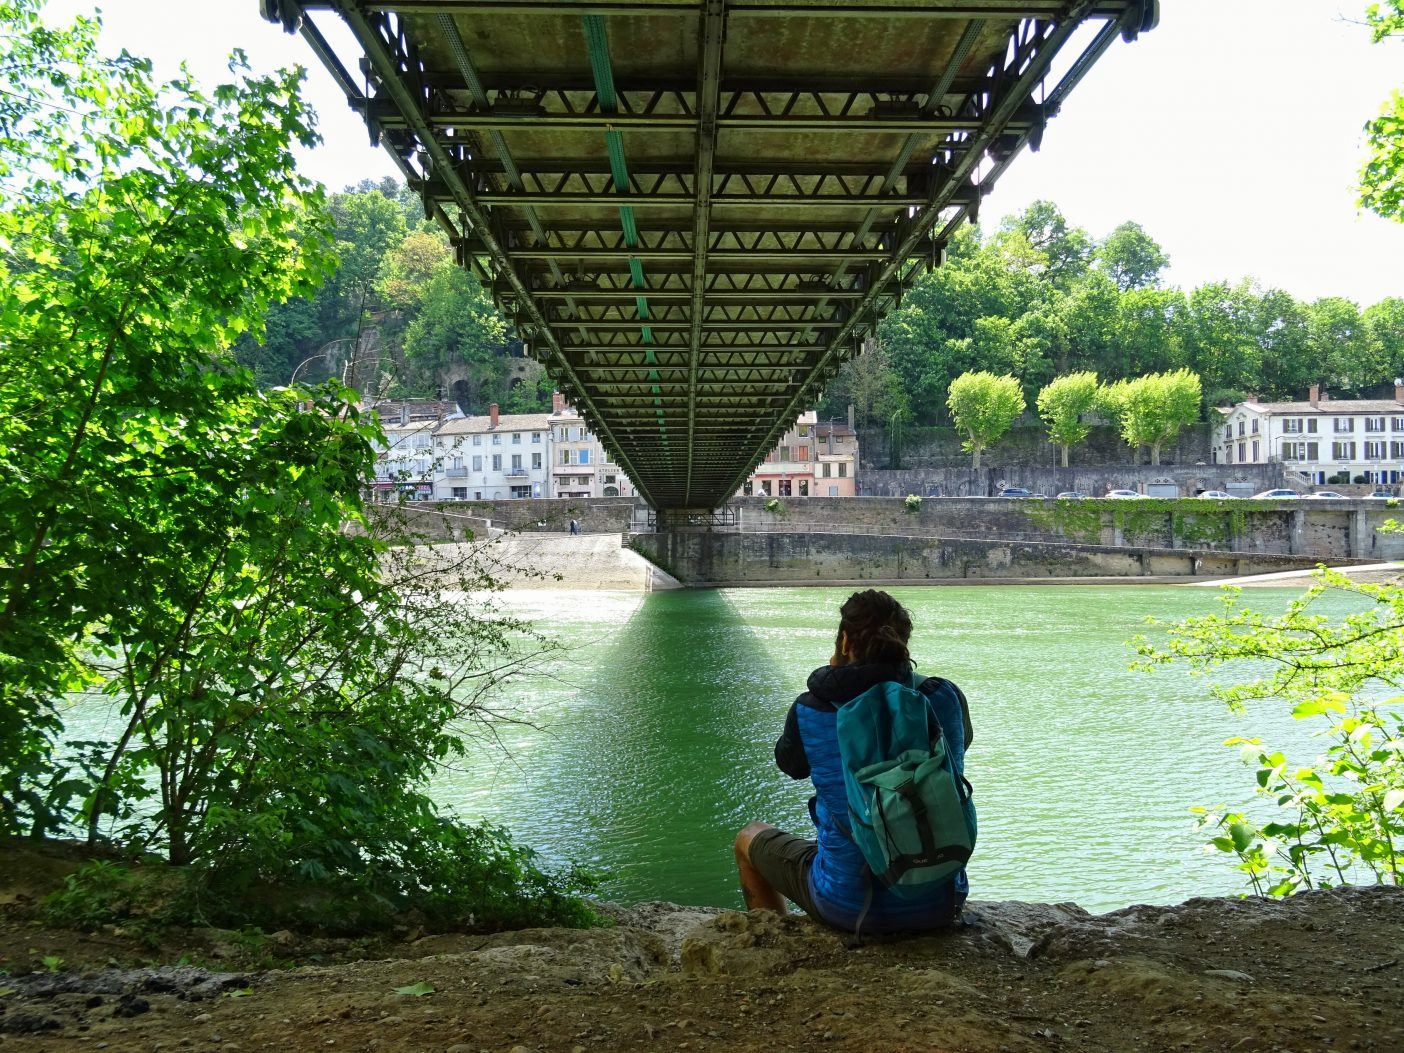 Man sitting under bridge taking photo